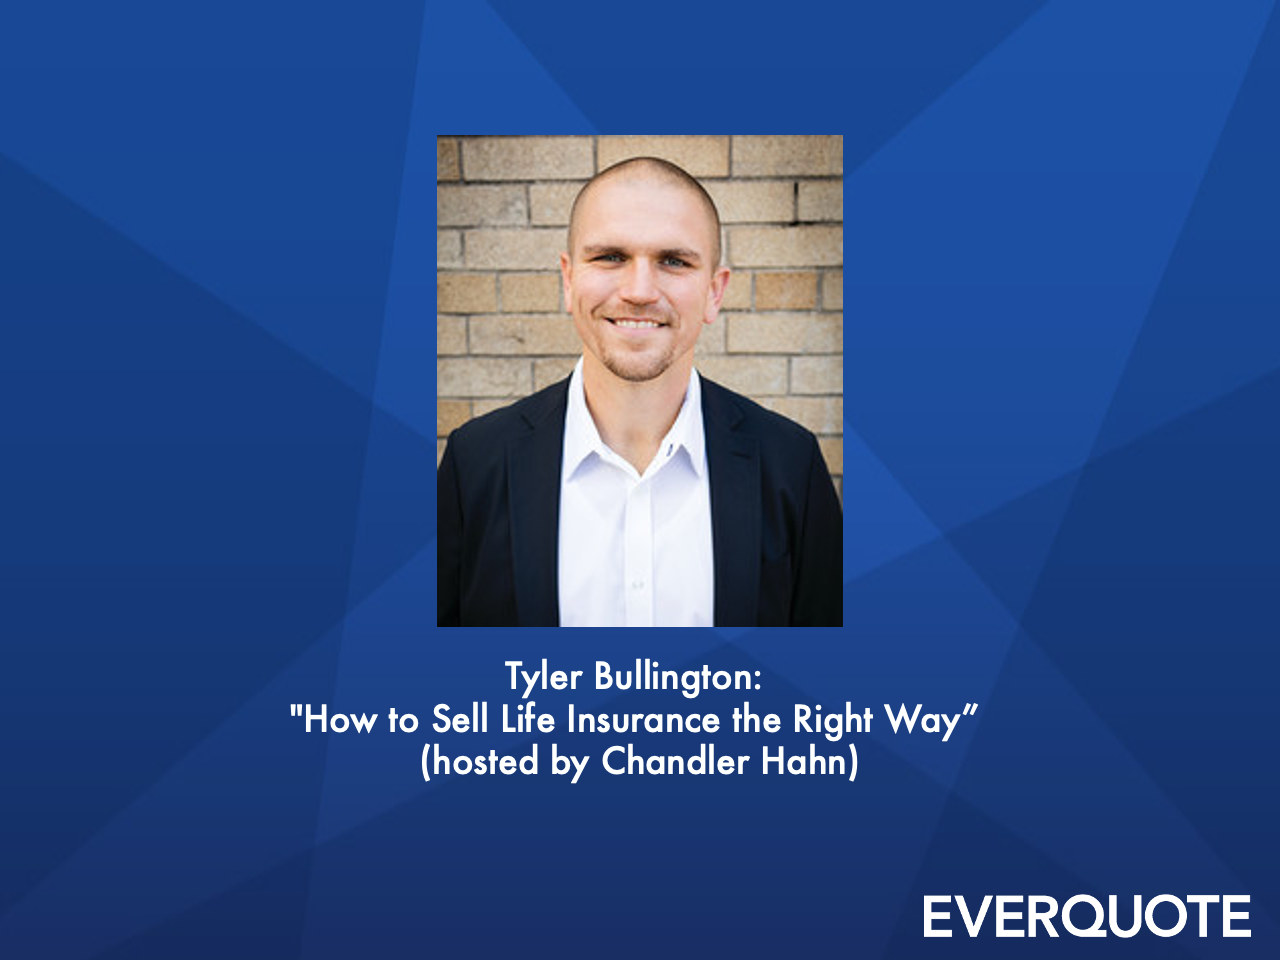 How to Sell Life Insurance the Right Way with Tyler Bullington